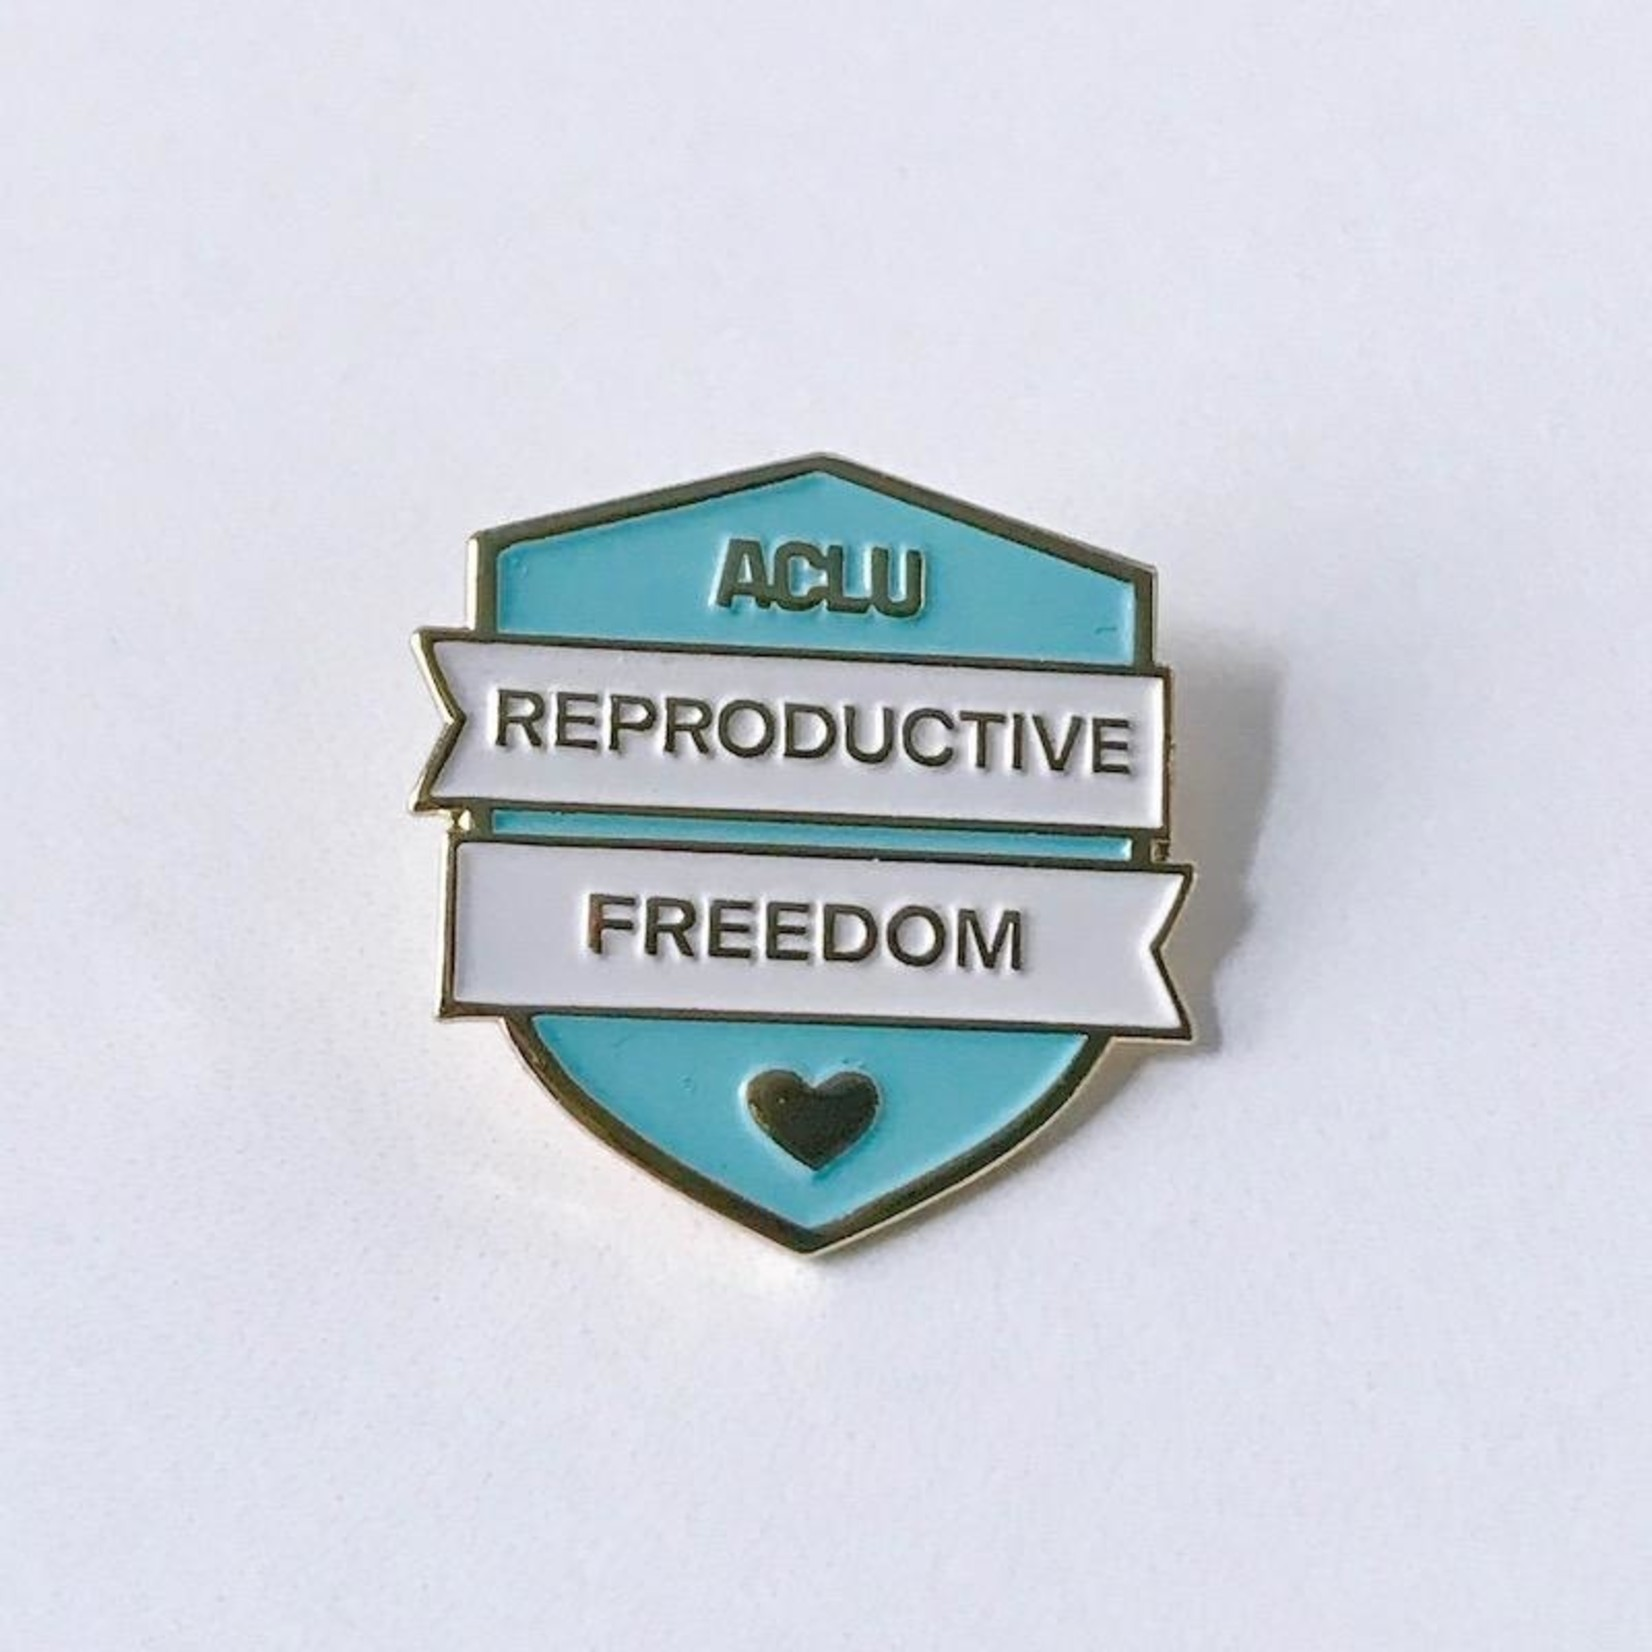 ACLU Reproductive Freedom Pin 100% of Sales goes to the ACLU of Indiana